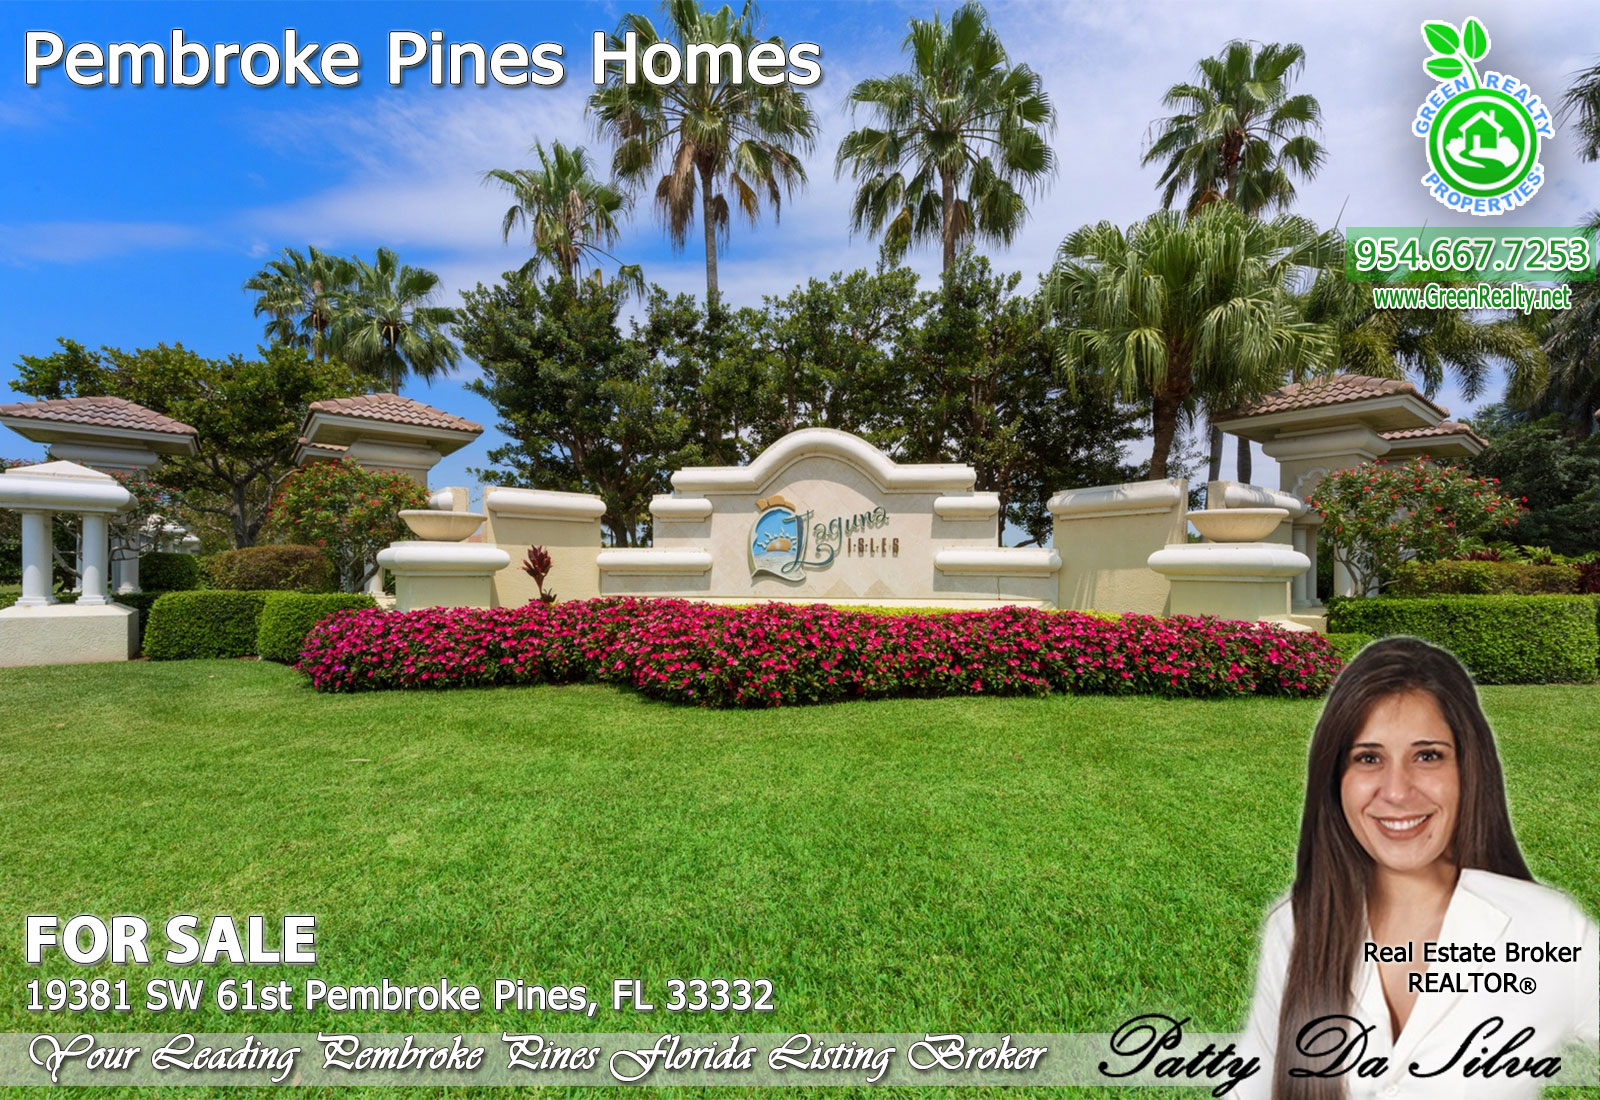 Laguna-Isles-Pembroke-Pines-South-Florida-listing-broker